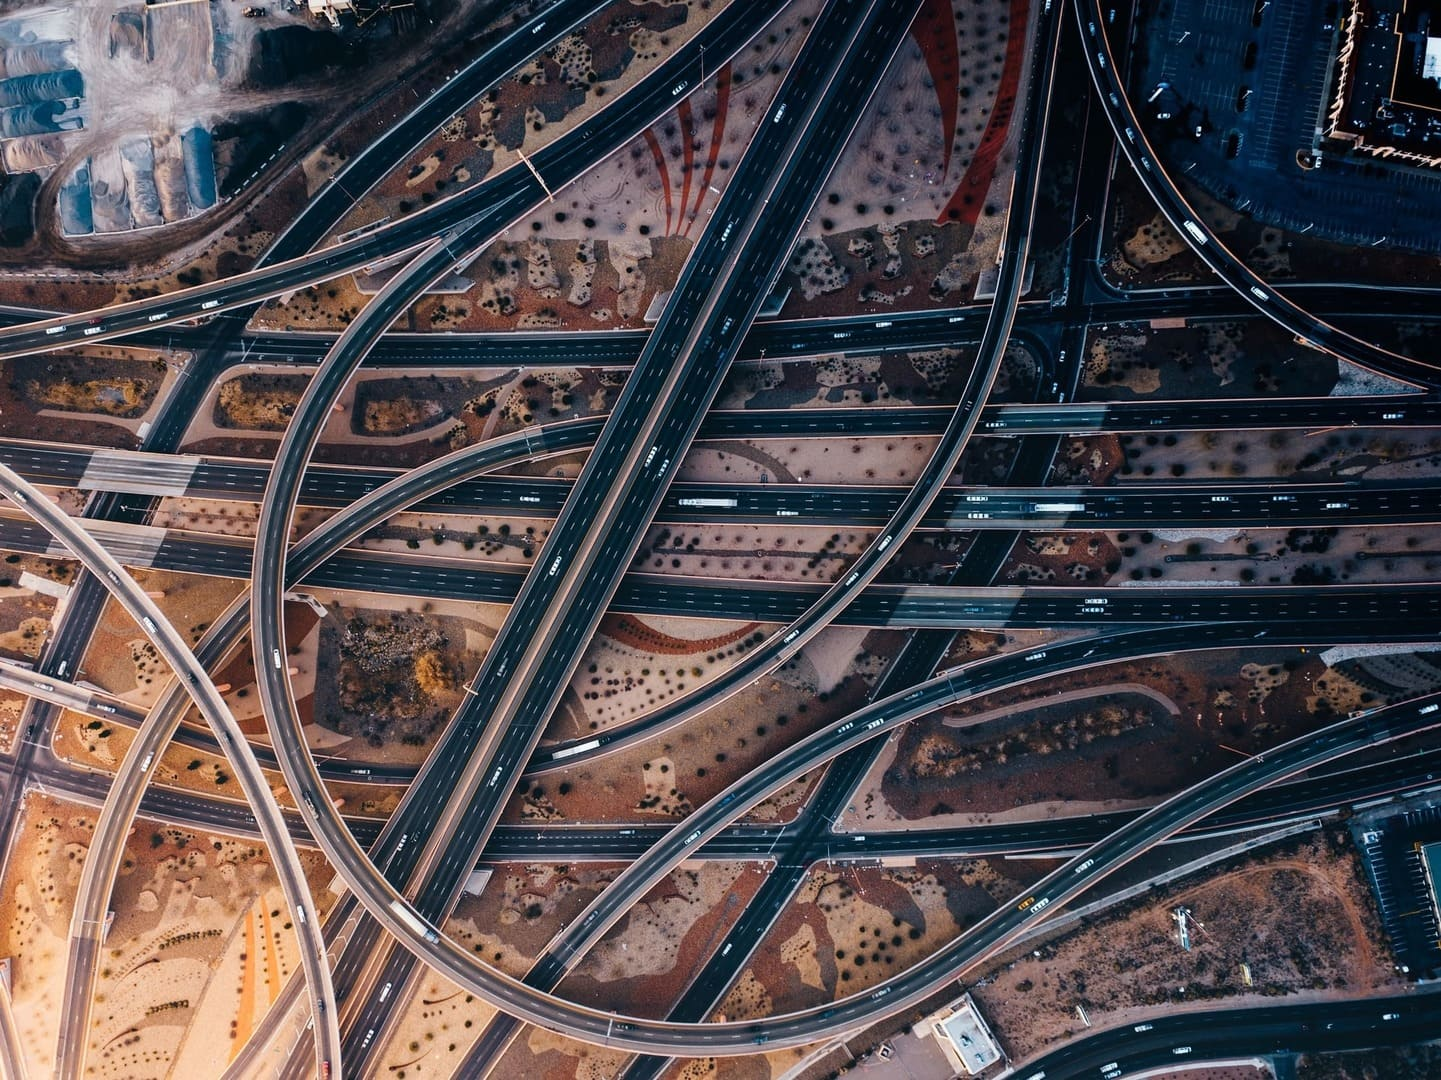 Drone image of many roads and overpasses winding past each other with vehicles travelling on them.